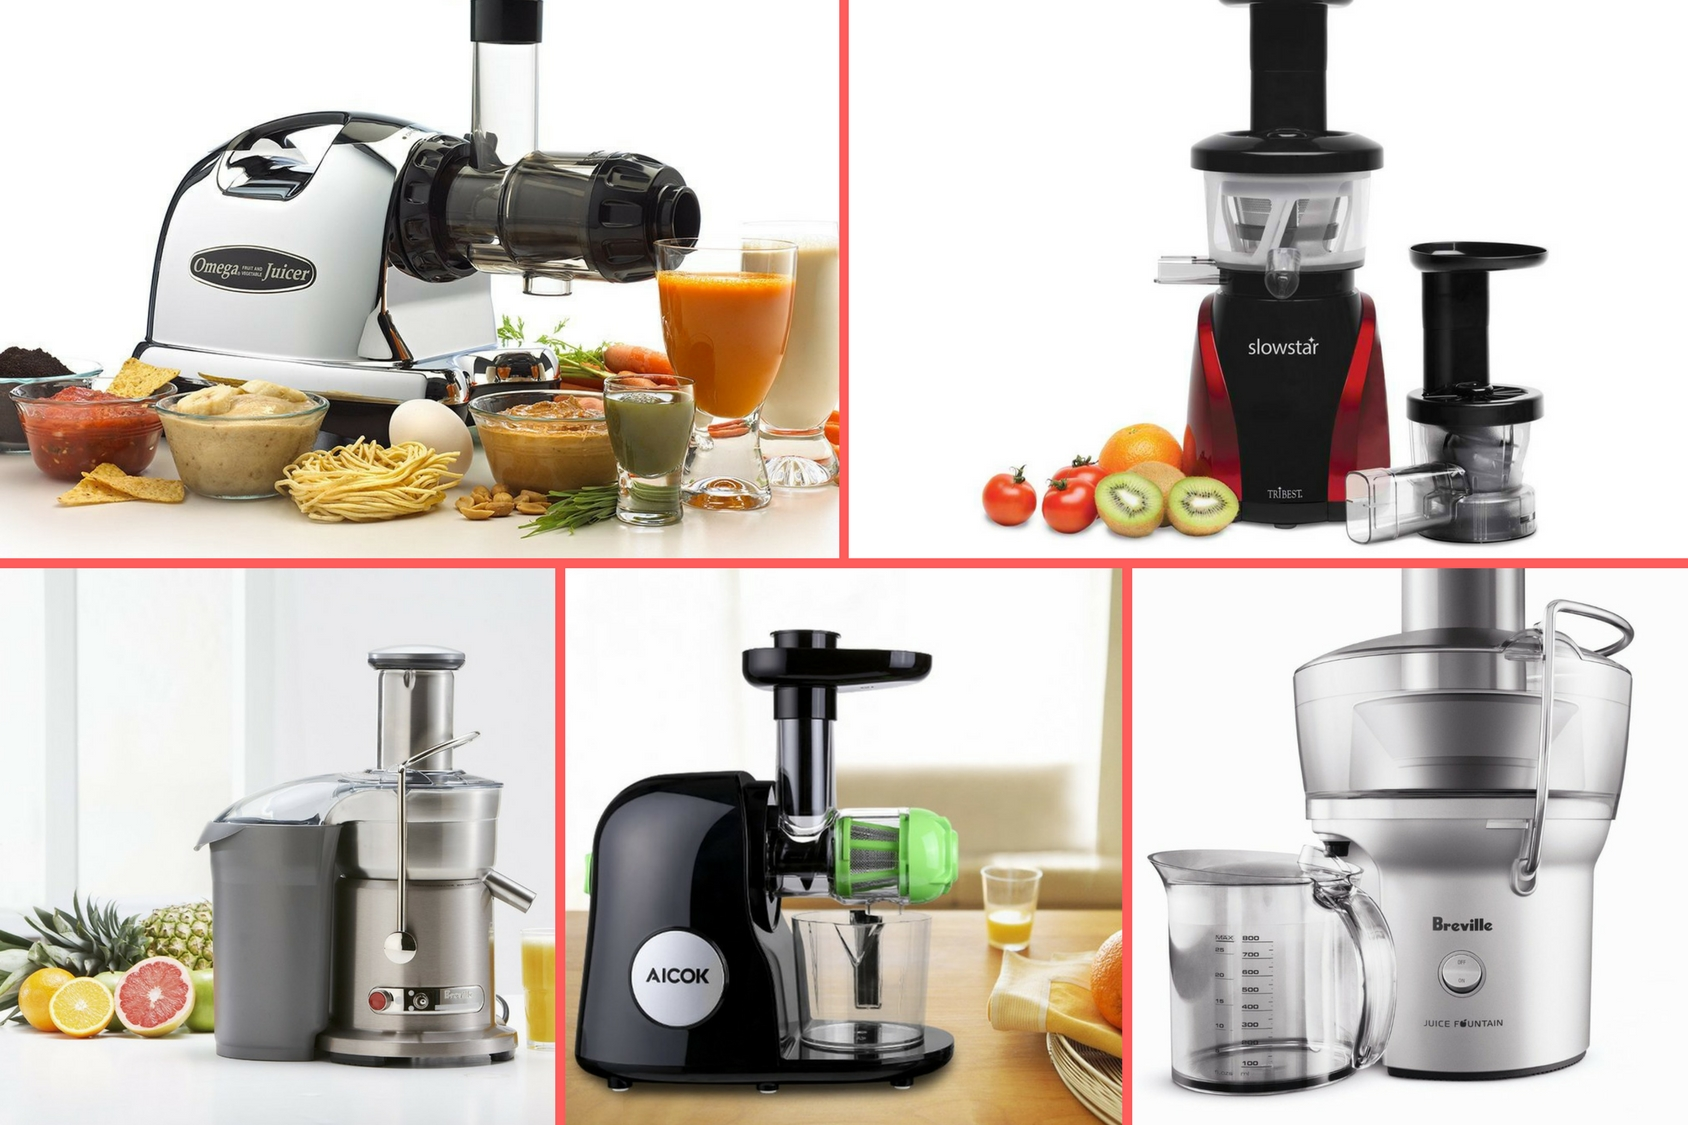 Best Masticating Juicers Of 2017 : Best Juicer Reviews Of 2017 ~ The Juice Authority